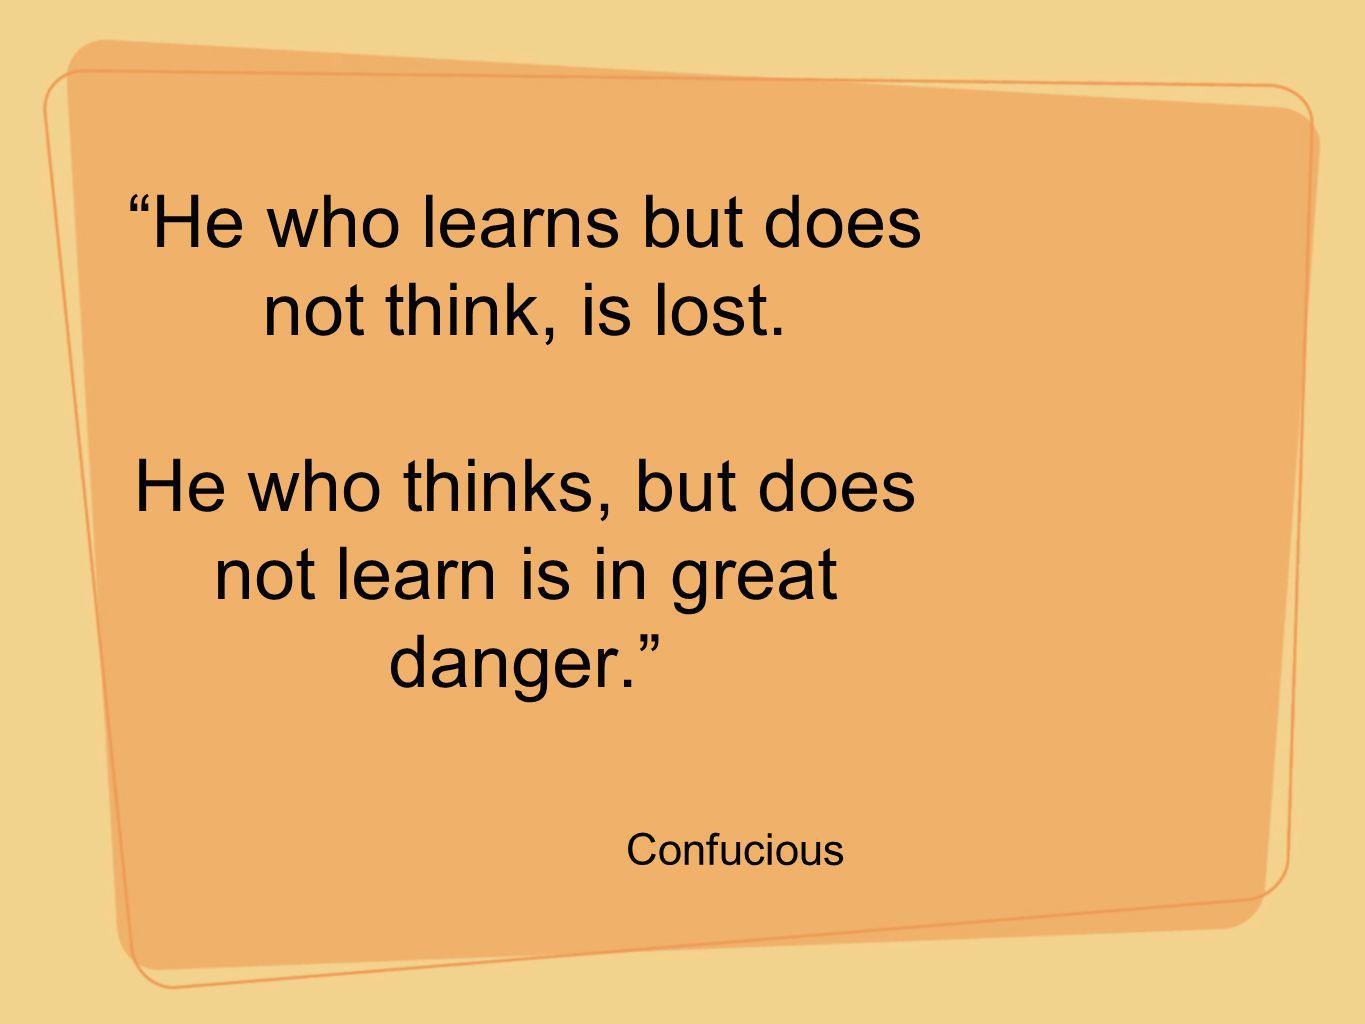 He who learns but does not think, is lost.